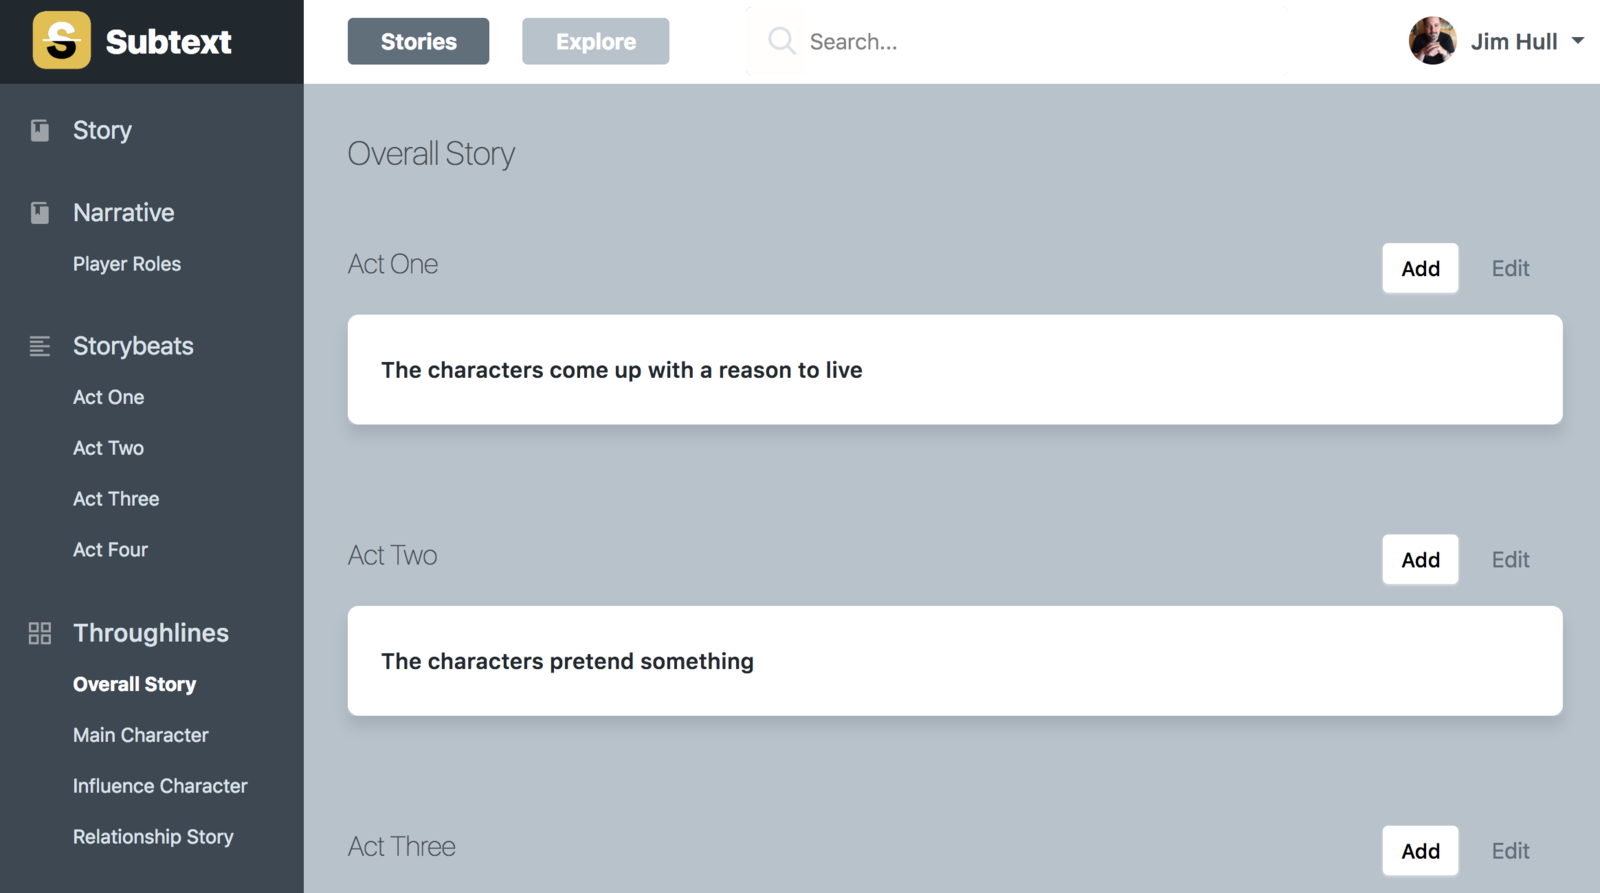 Overall Story View